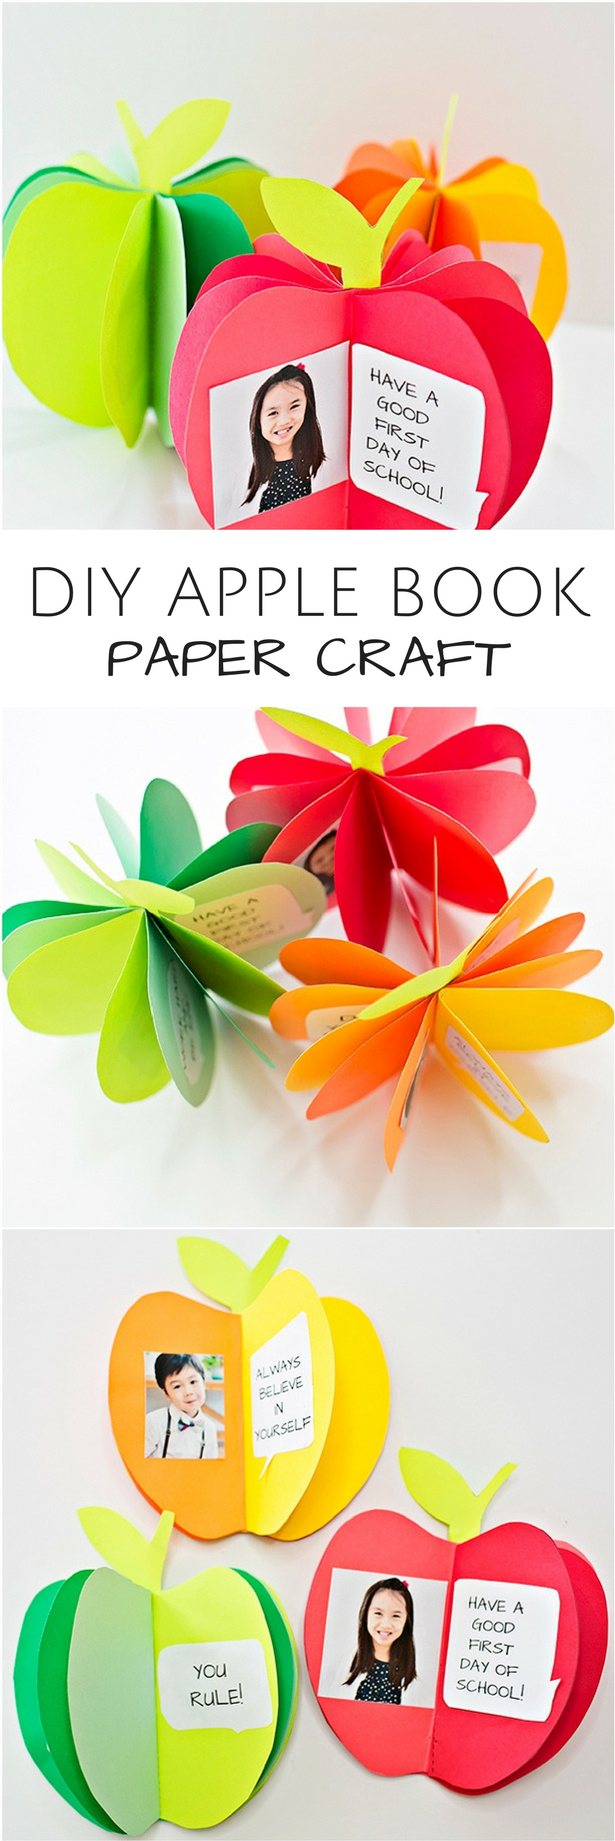 diy 3d apple book paper craft. cute back to school craft for kids or